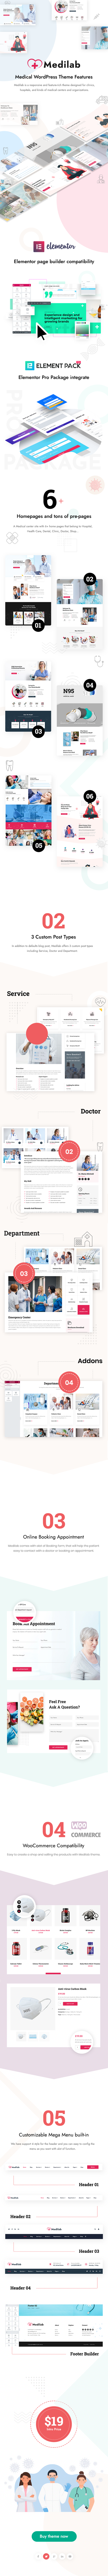 Medilab - Health & Medical WordPress Theme - 1